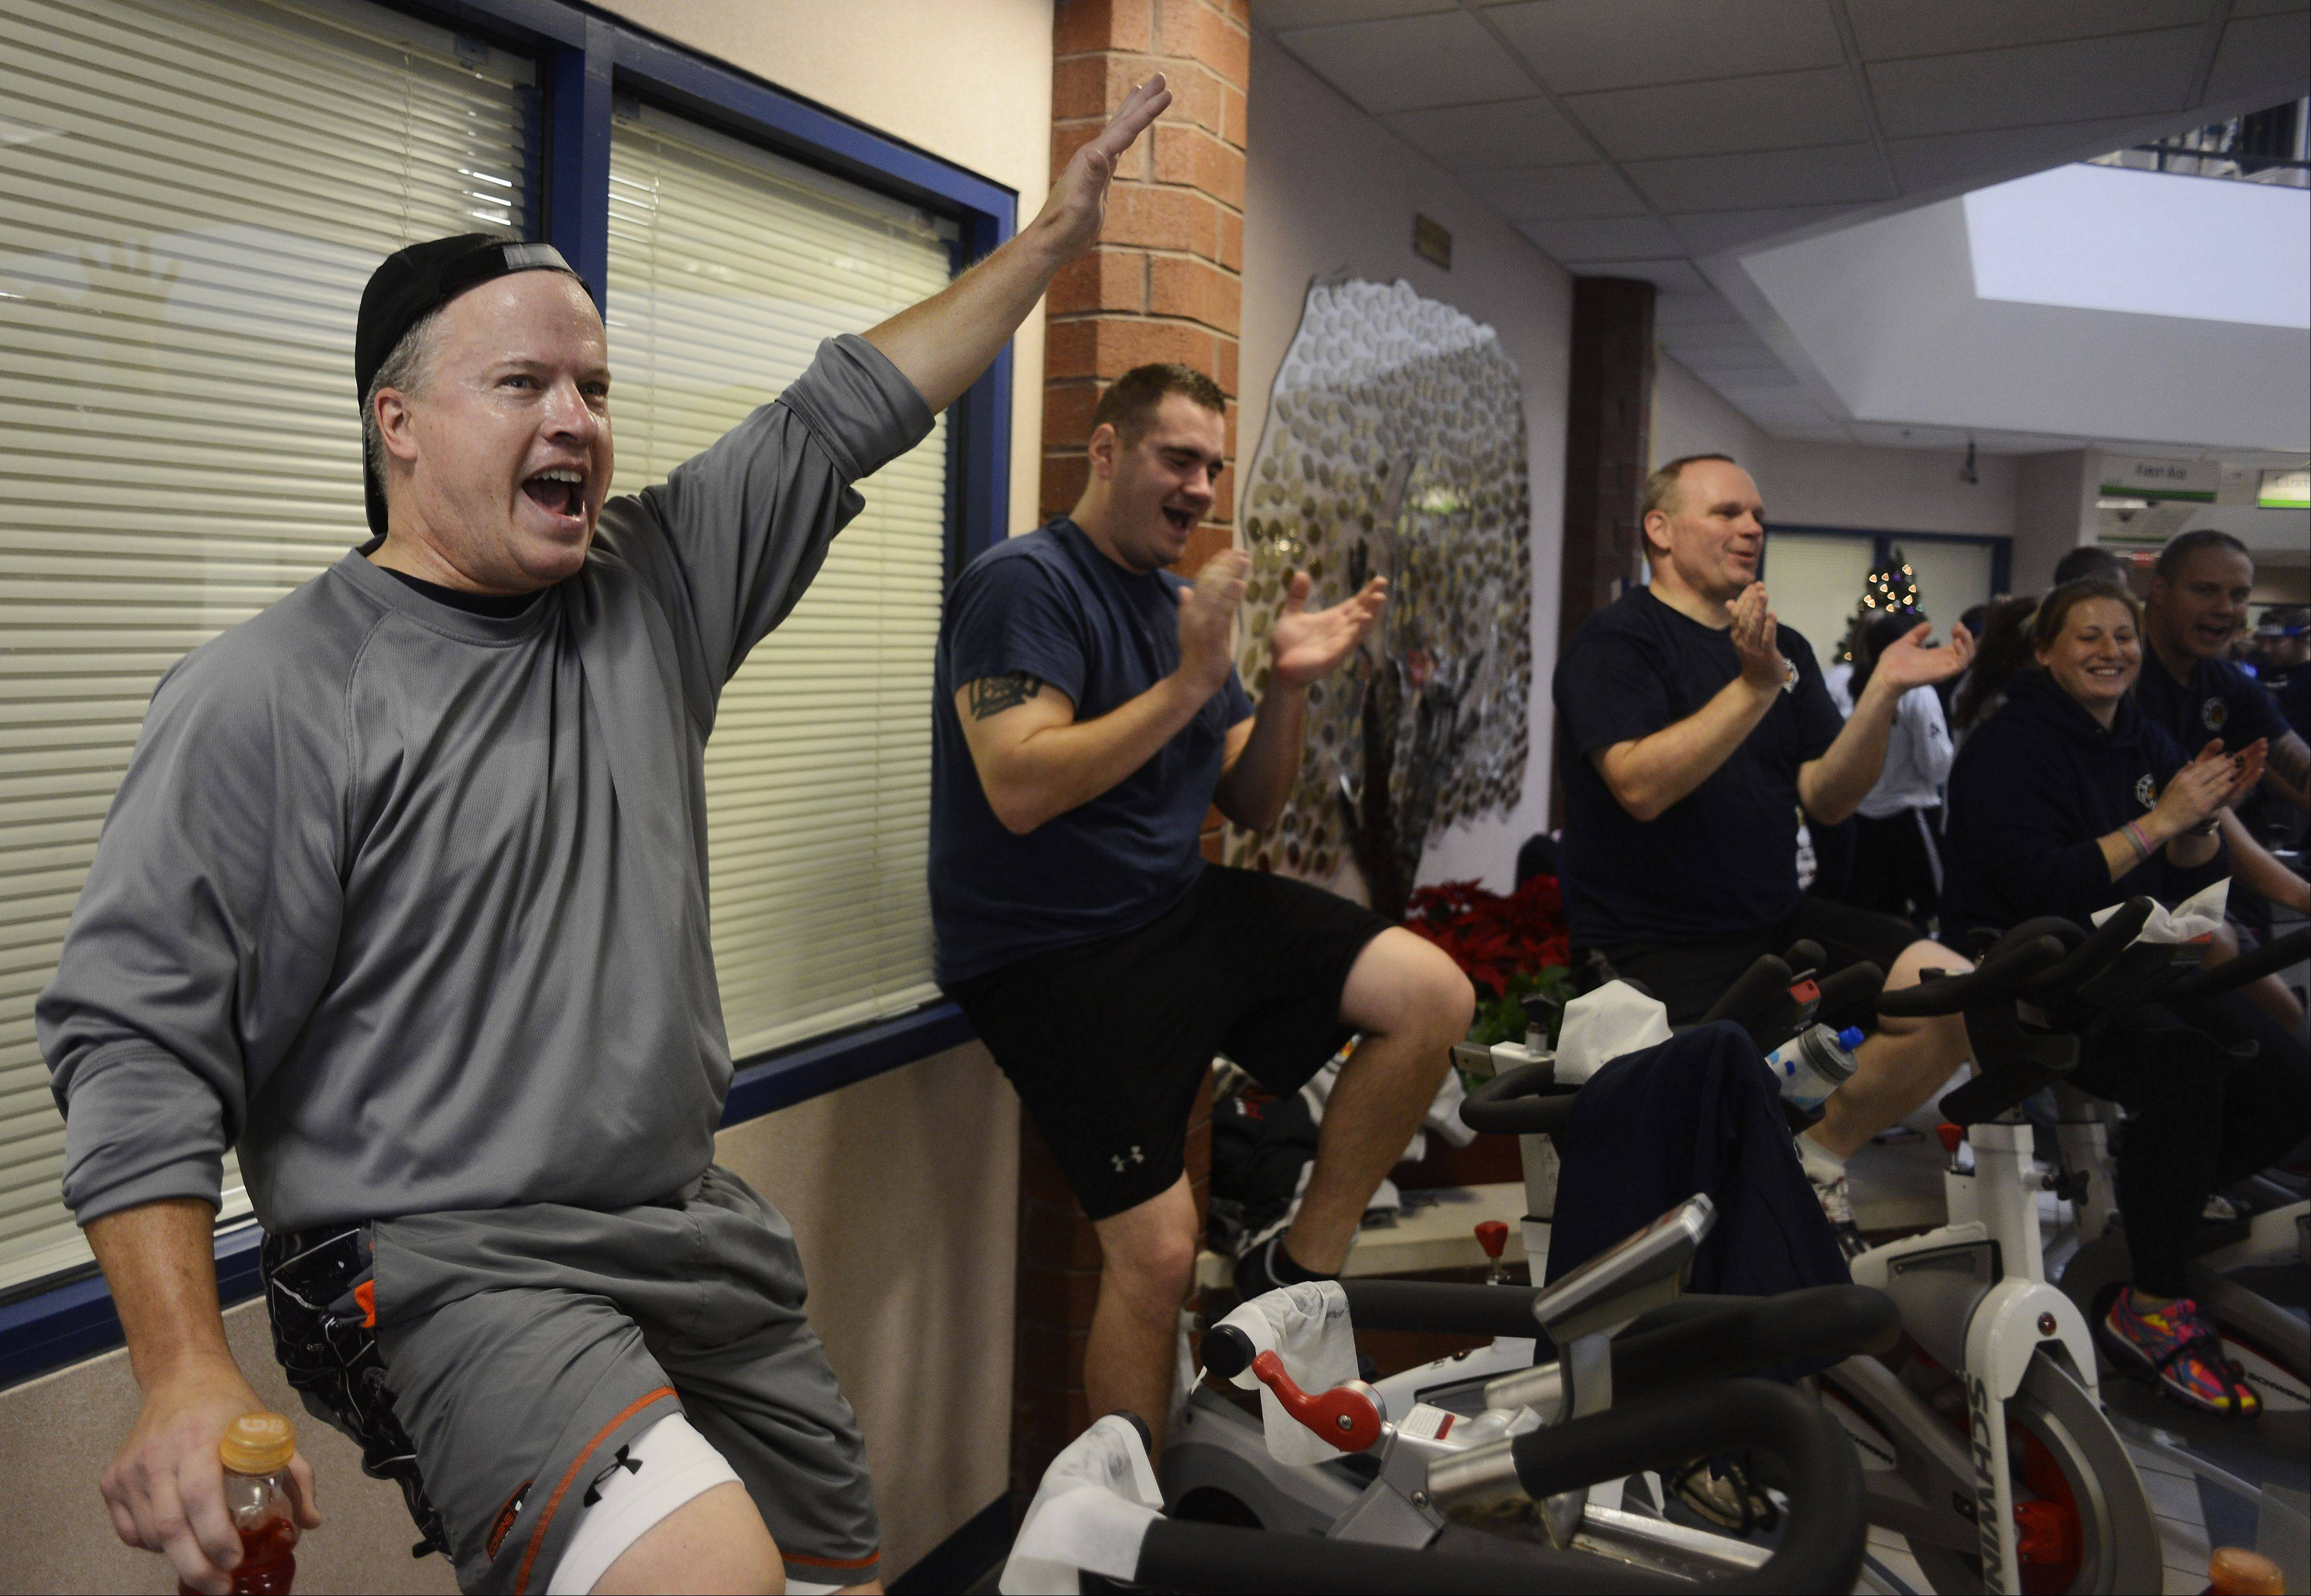 Local business owner Jim O'Malley lets out a cheer after a donor gave the final $10 needed for his group to stop riding during the Elk Grove Parks Foundation Spin-O-Thon at the pavilion in Elk Grove Village Saturday.